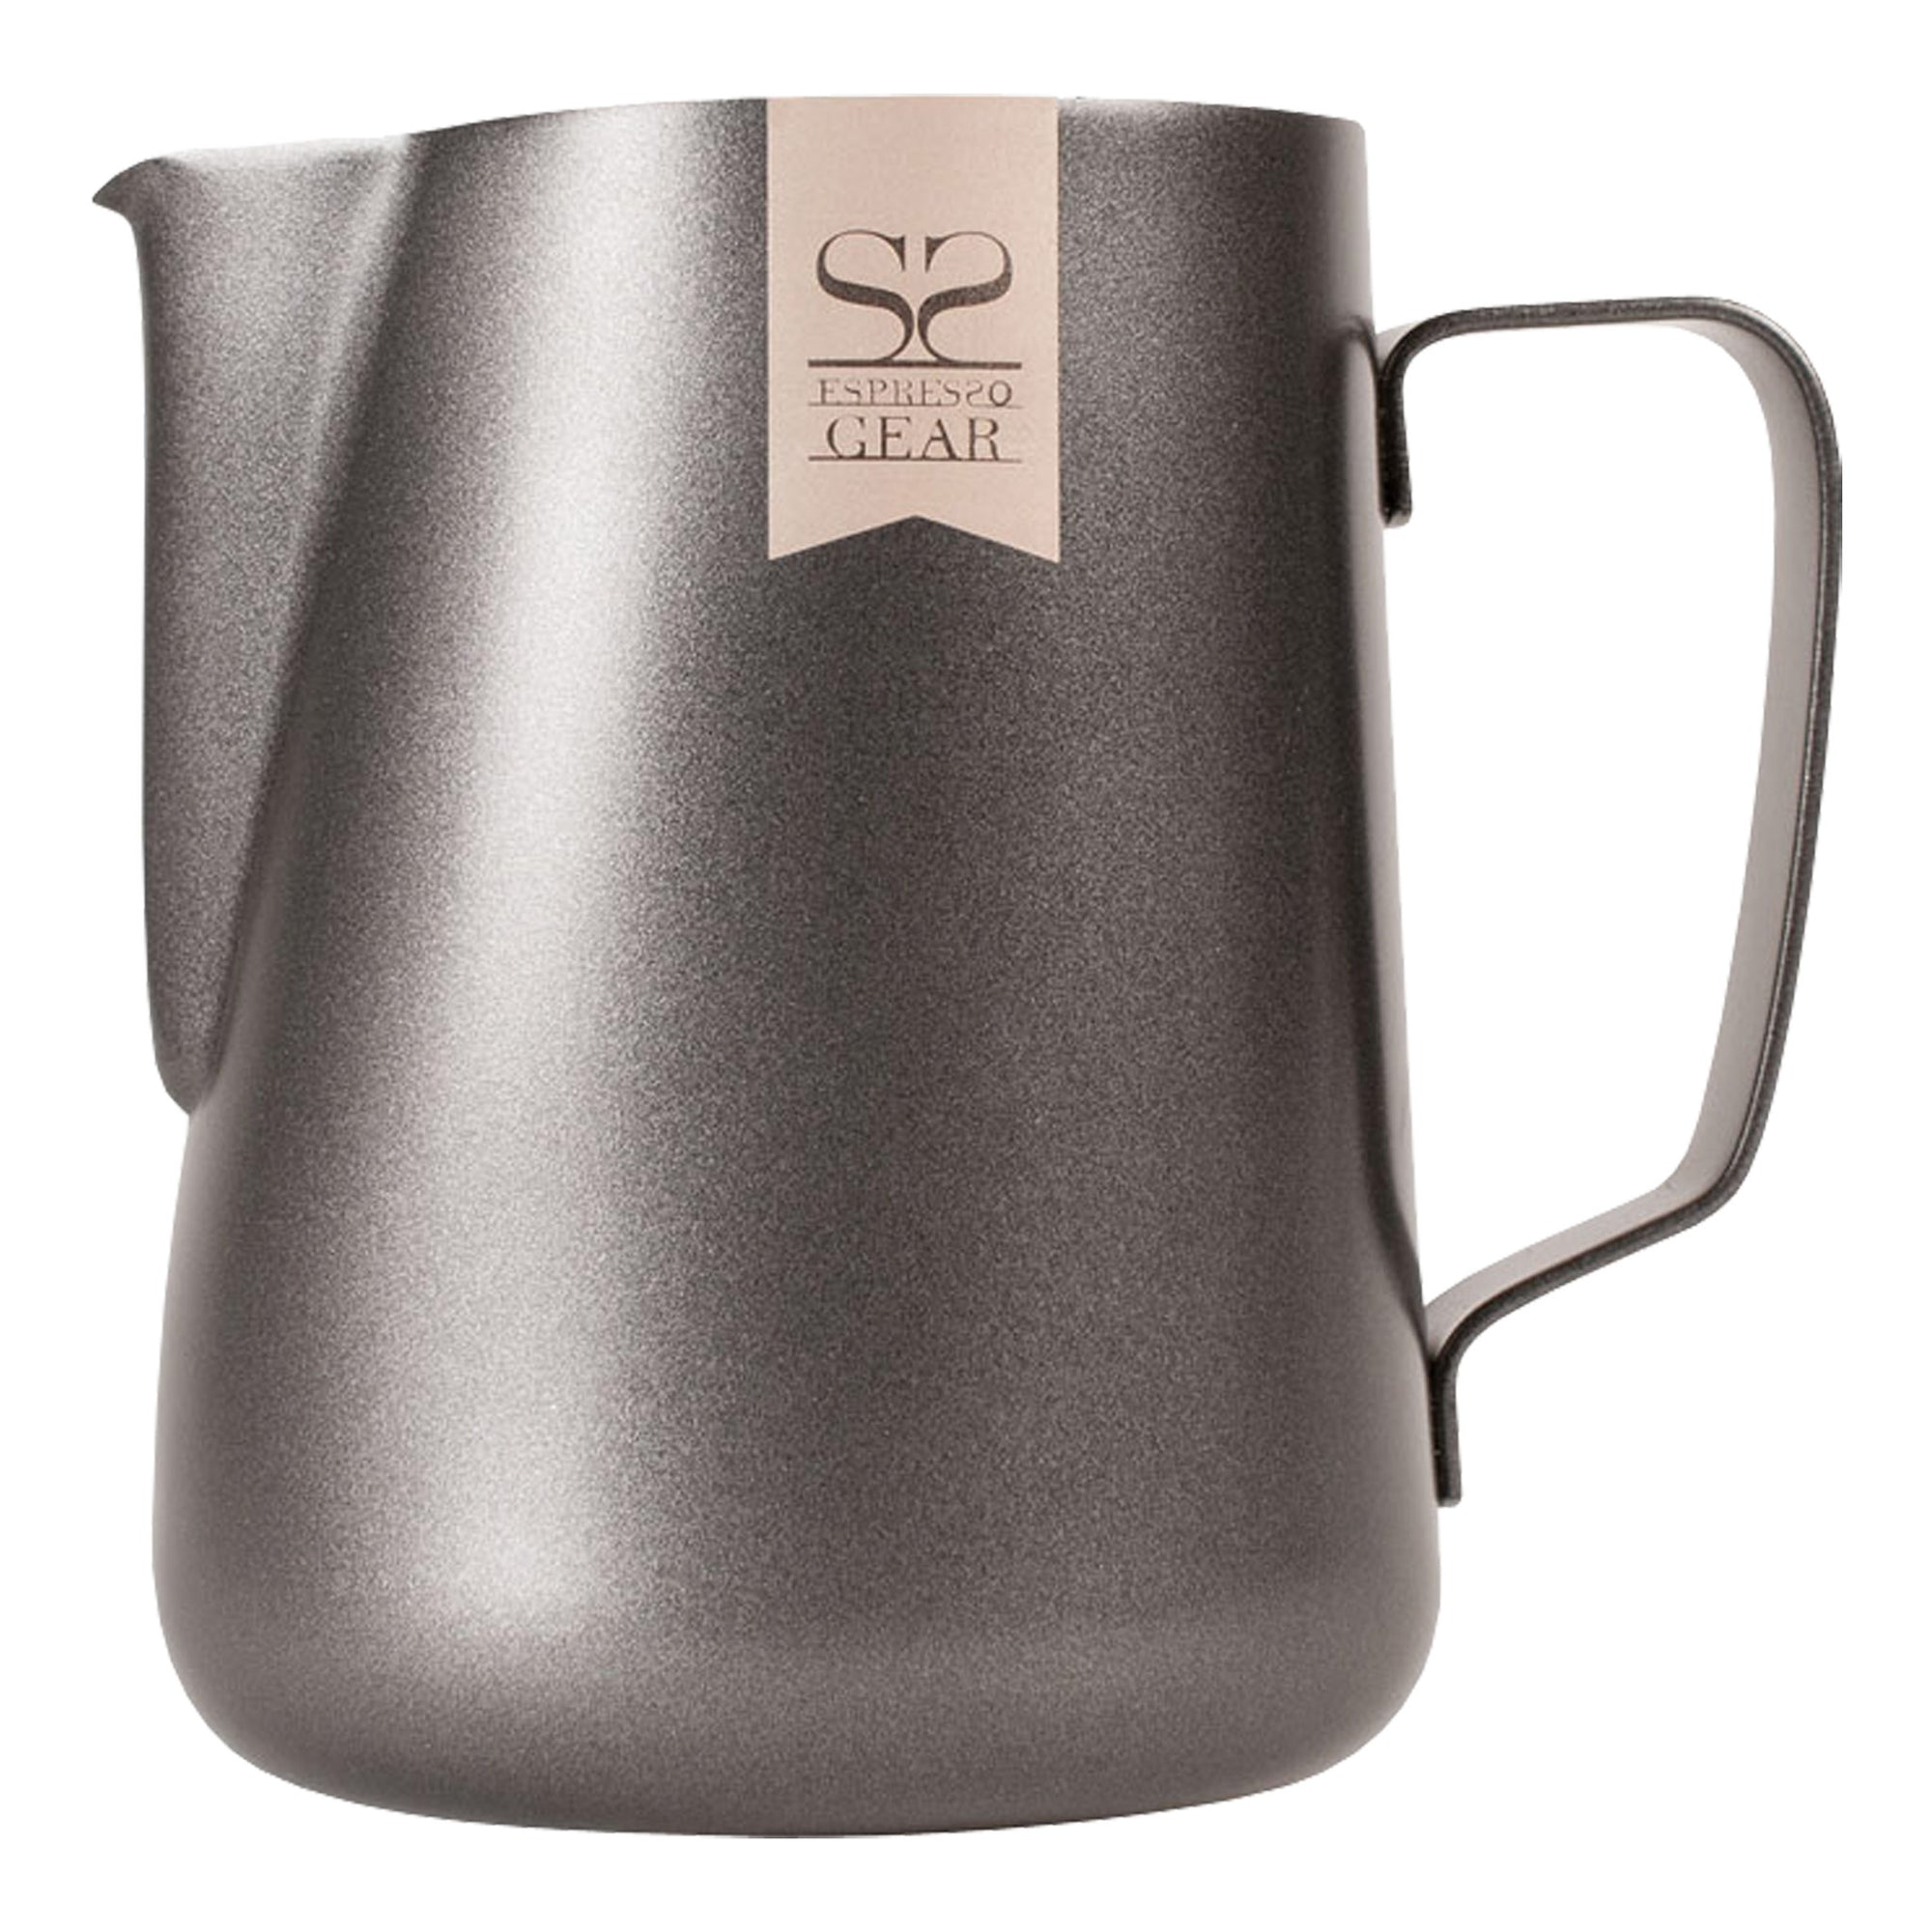 Espresso Gear Black Pitcher 600ml - Espresso Gear